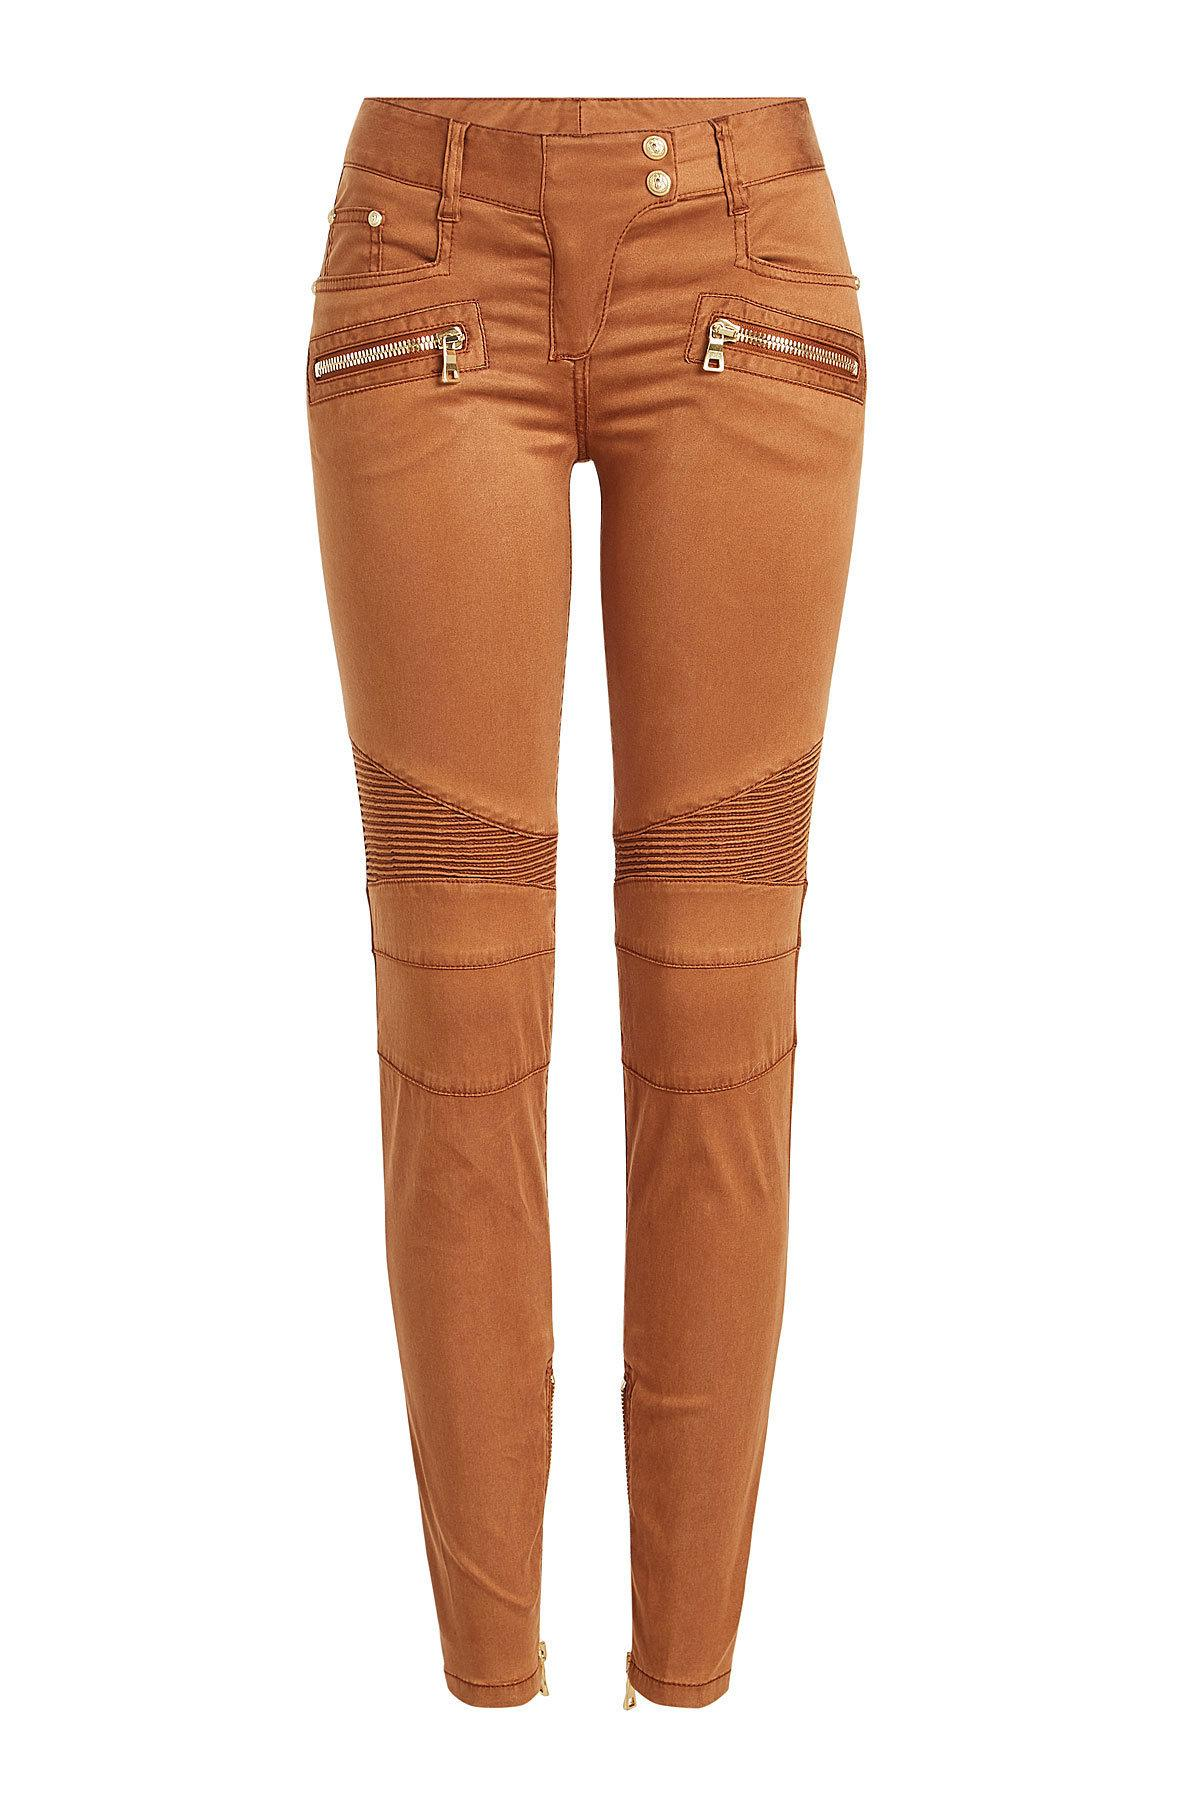 Balmain Biker Pants With Zipped Ankles In Brown